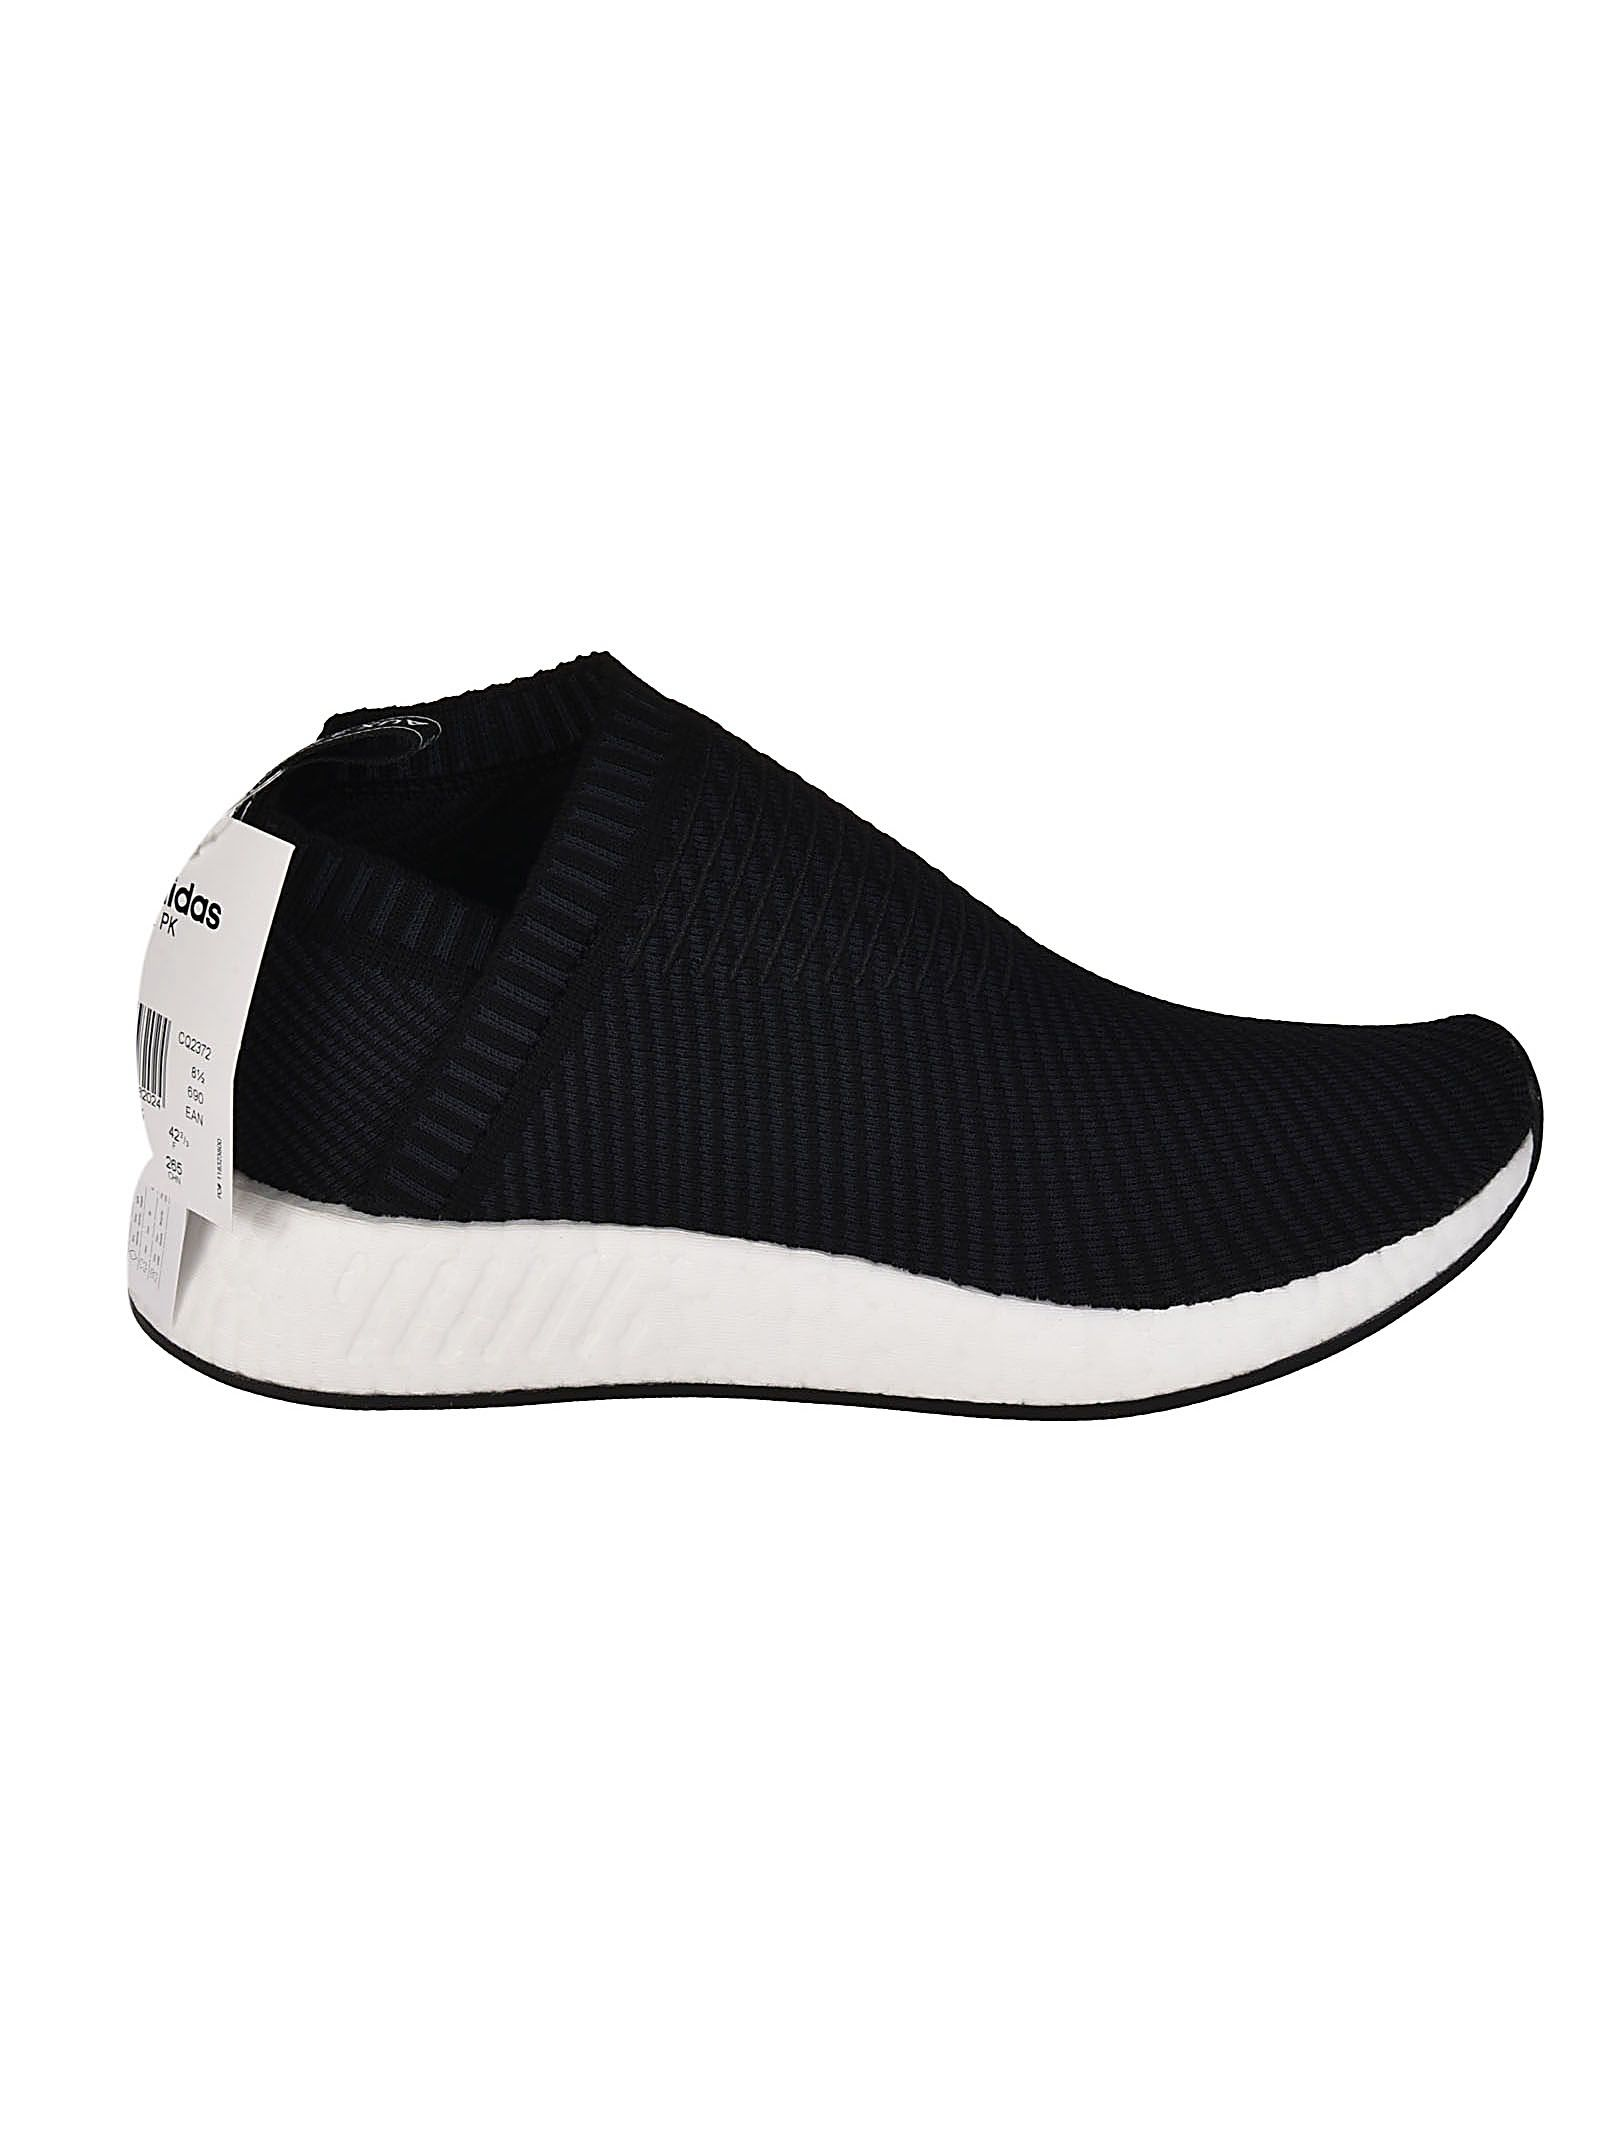 Adidas Black NMD CS2 Primeknit sneakers free shipping footlocker pictures discount shop for with mastercard online with paypal low price buy cheap cheap crhPNSPN9C